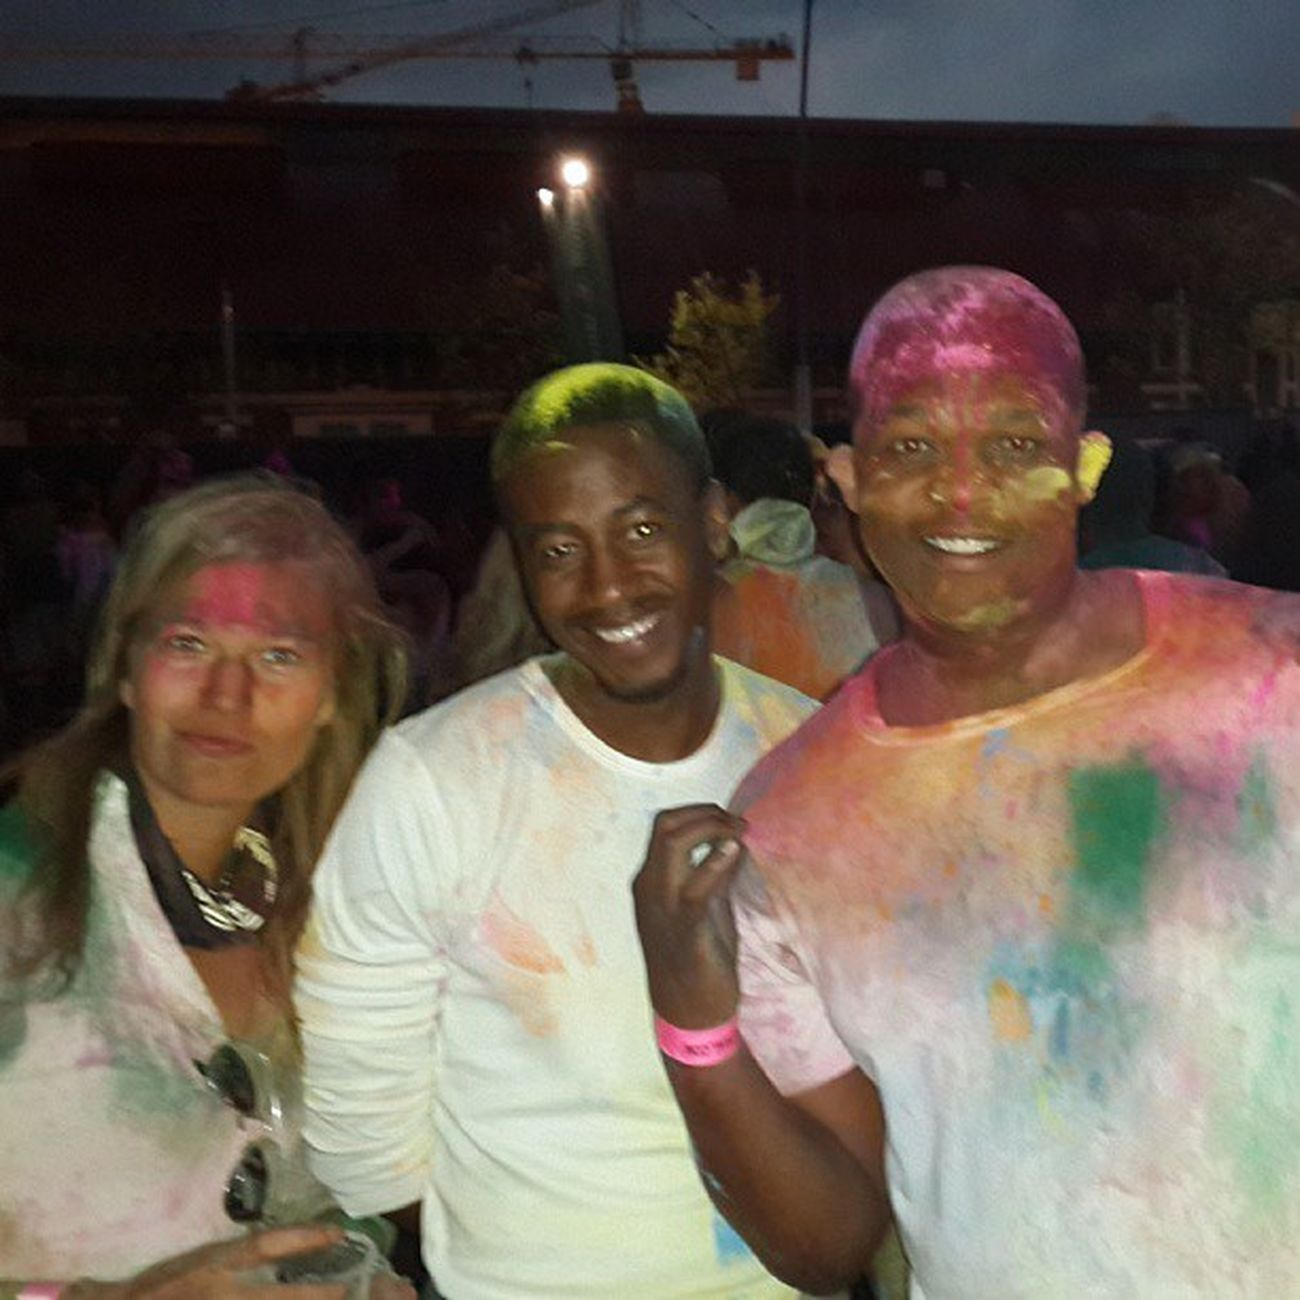 White girl photo bombed the pic!! We still loving it!! HolifestivalSA @ghettonerdgp